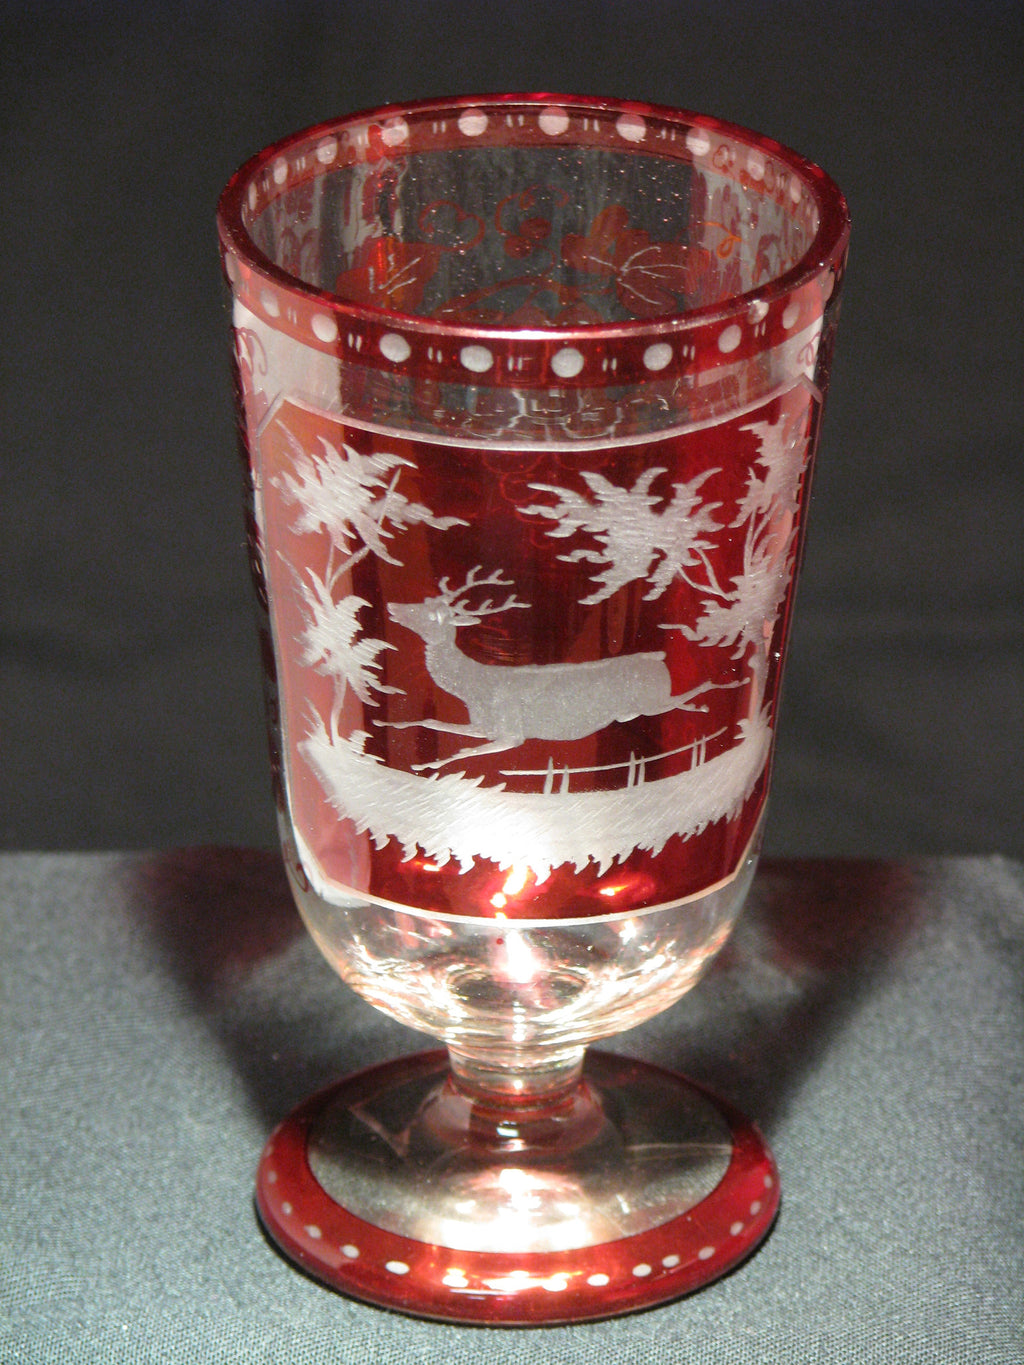 910501 Ruby Flashed W/Rect Panels Of Engraved Deer & Trees, Ruby, Bohemian Glassware, Antique, - ReeceFurniture.com - Free Local Pick Ups: Frankenmuth, MI, Indianapolis, IN, Chicago Ridge, IL, and Detroit, MI